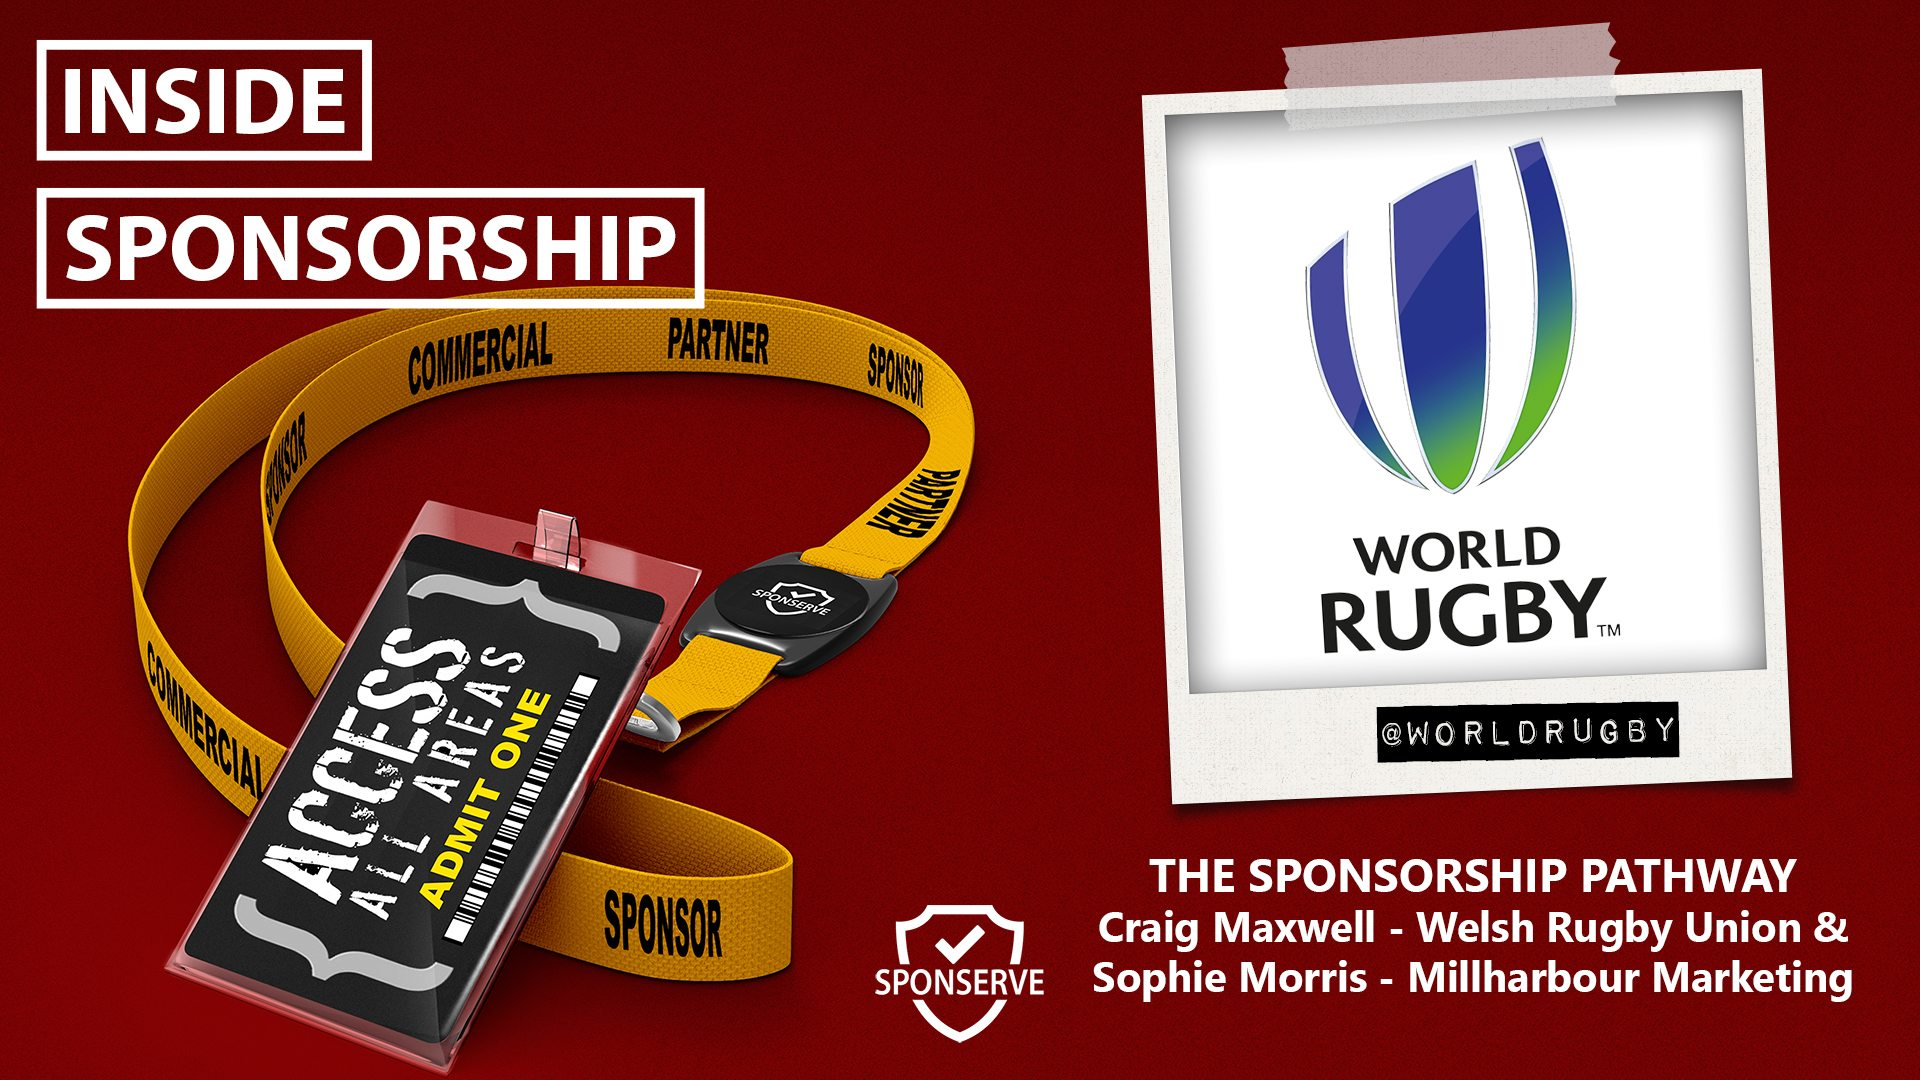 INSIDE SPONSORSHIP wORLD RUGBY SPECIAL CRAIG MAXWELL WELSH RUGBY AND SOPHIE MORRIS MILLHARBOUR MARKETING